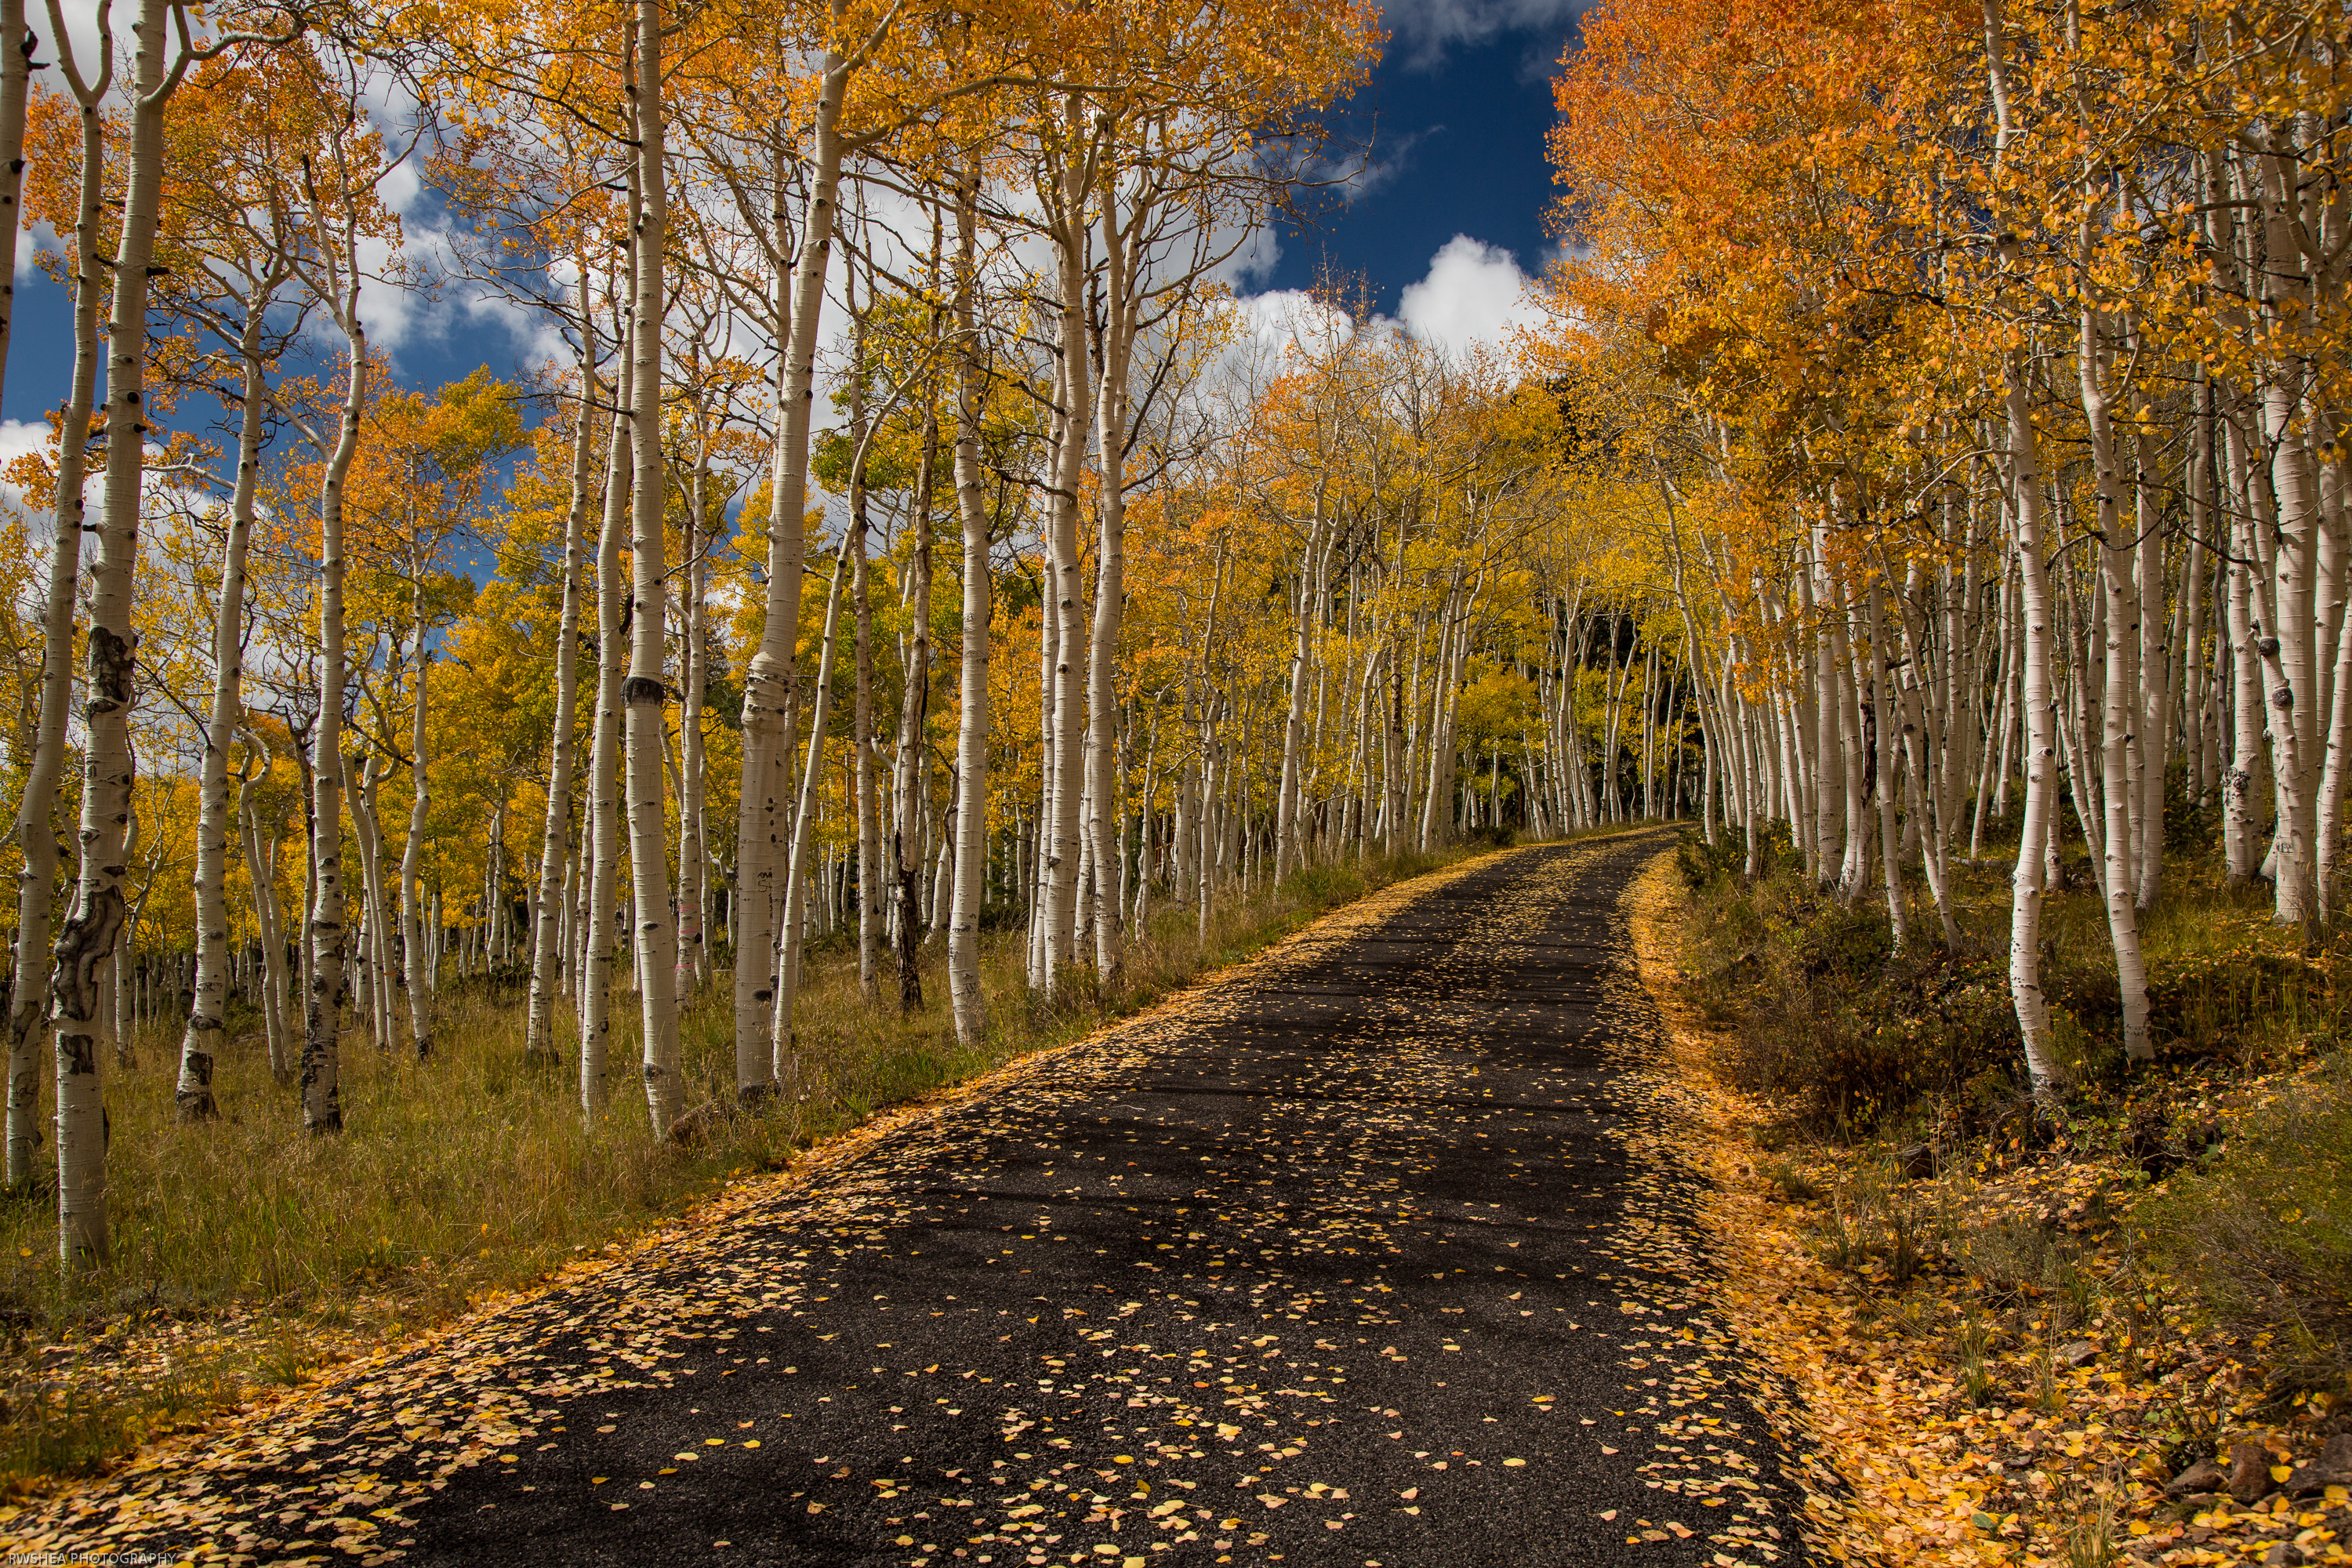 Believe it or not, the aspens on both sides of this road are all one tree. Credit: Robert Shea via Flickr.